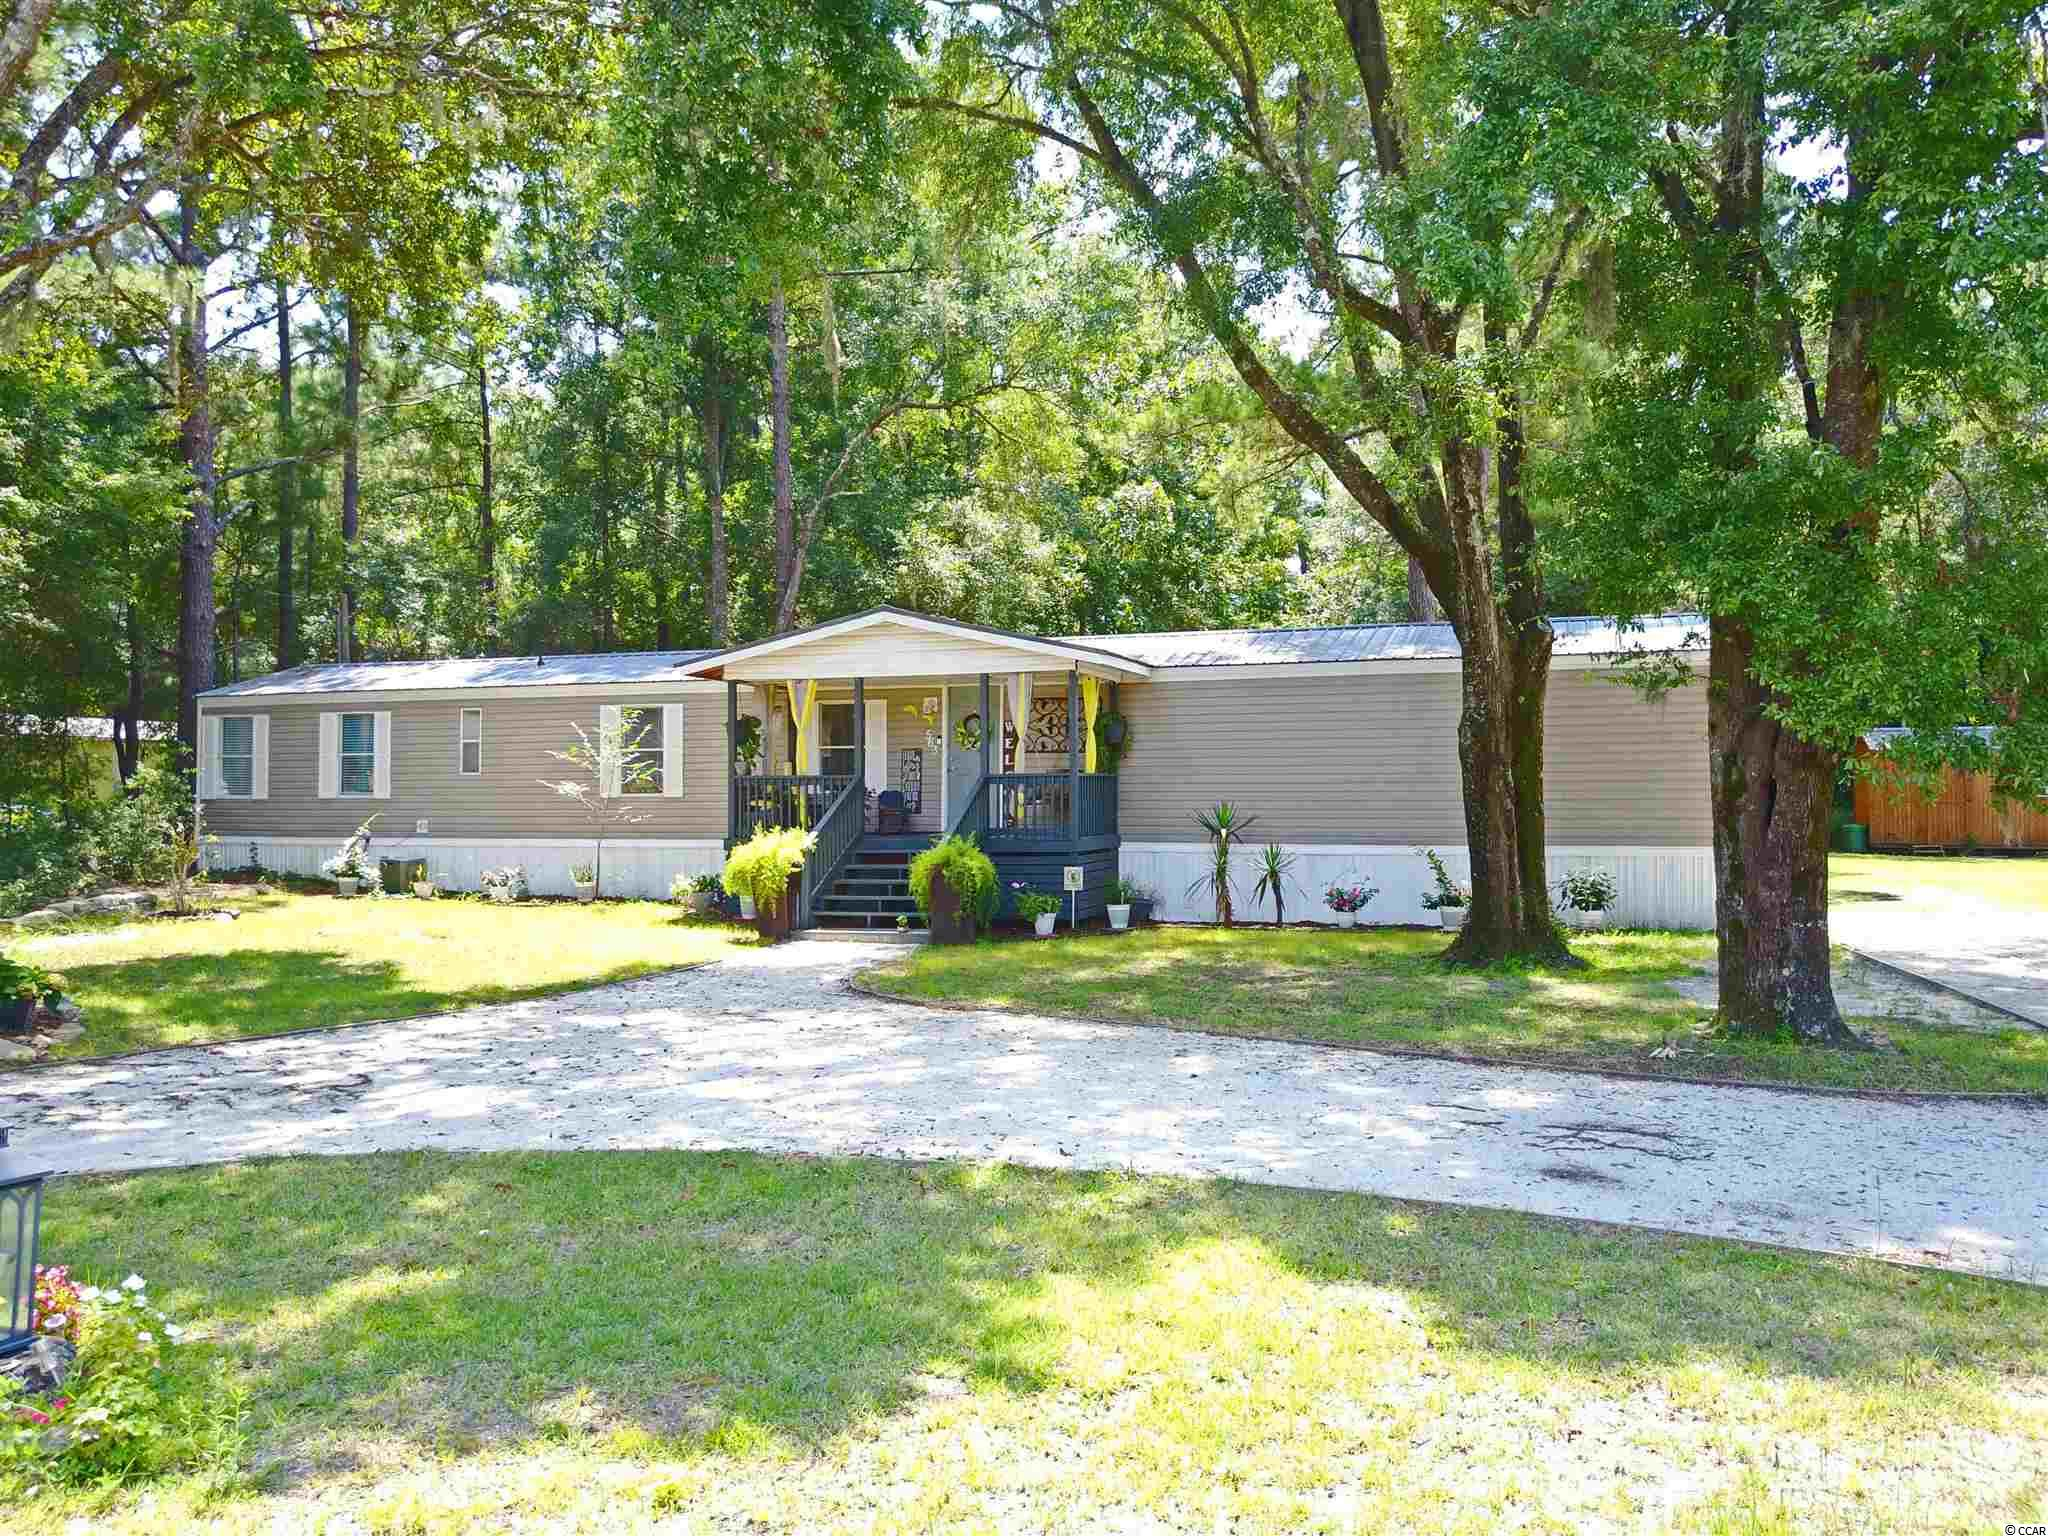 """This is a beautiful home on .49 acre of land with no HOA in the heart of Pawleys. The home is immaculately maintained, including a new roof. This 3br/2ba home features vaulted ceilings and 2 very large bedrooms, with a smaller 3rd br that could also be used as an office. The living room and kitchen are both very spacious and boast an open floor plan. The lot is shaded and allows for plenty of room for outdoor activities! There is a new double tiered deck for grilling and entertaining. This home is a must see and is easily a golf-cart or bike ride to the beach or the nearby shopping center, which includes a grocery store. Be sure to take the 3D virtual tour! Tap/click on circles to """"""""walk"""" through the home! Click on walls to turn around or look at floors and ceilings! Just like being there!"""